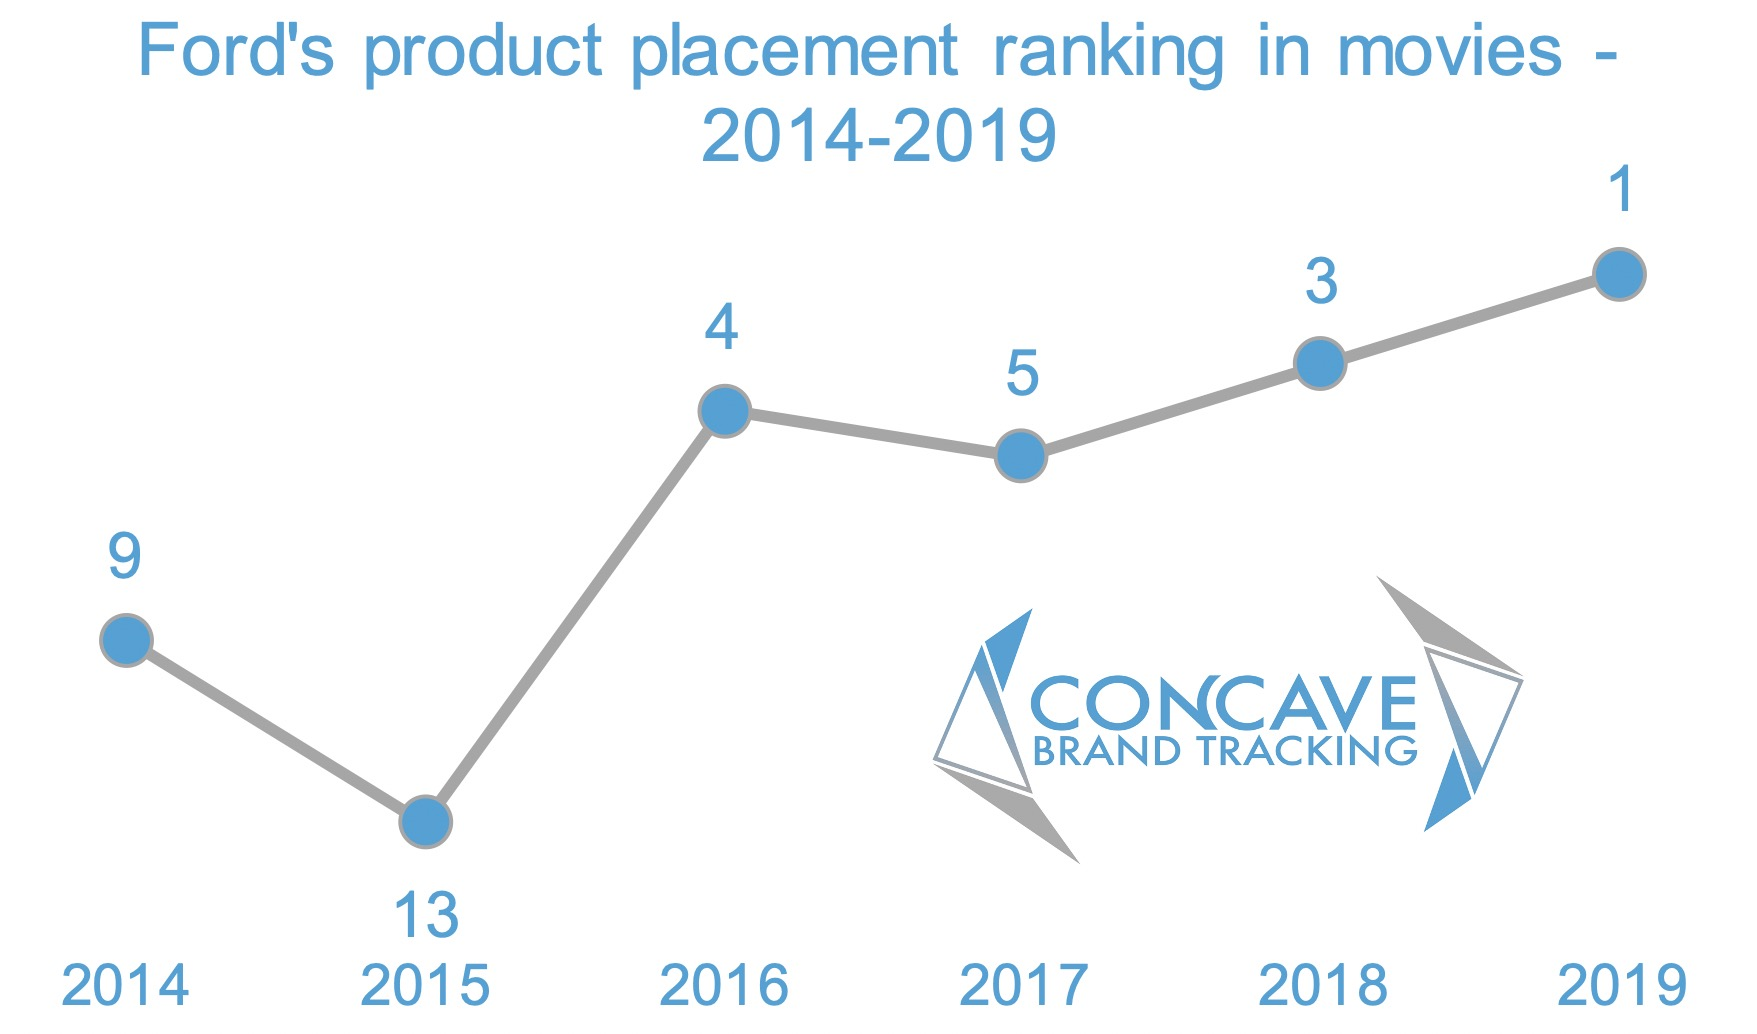 Concave brand tracking, product placement, brands, movies, entertainment marketing, branded integration, brand integration, integration marketing, analysis, valuation, metrics, measurement, concave, Ford, ranking, annual position, chart